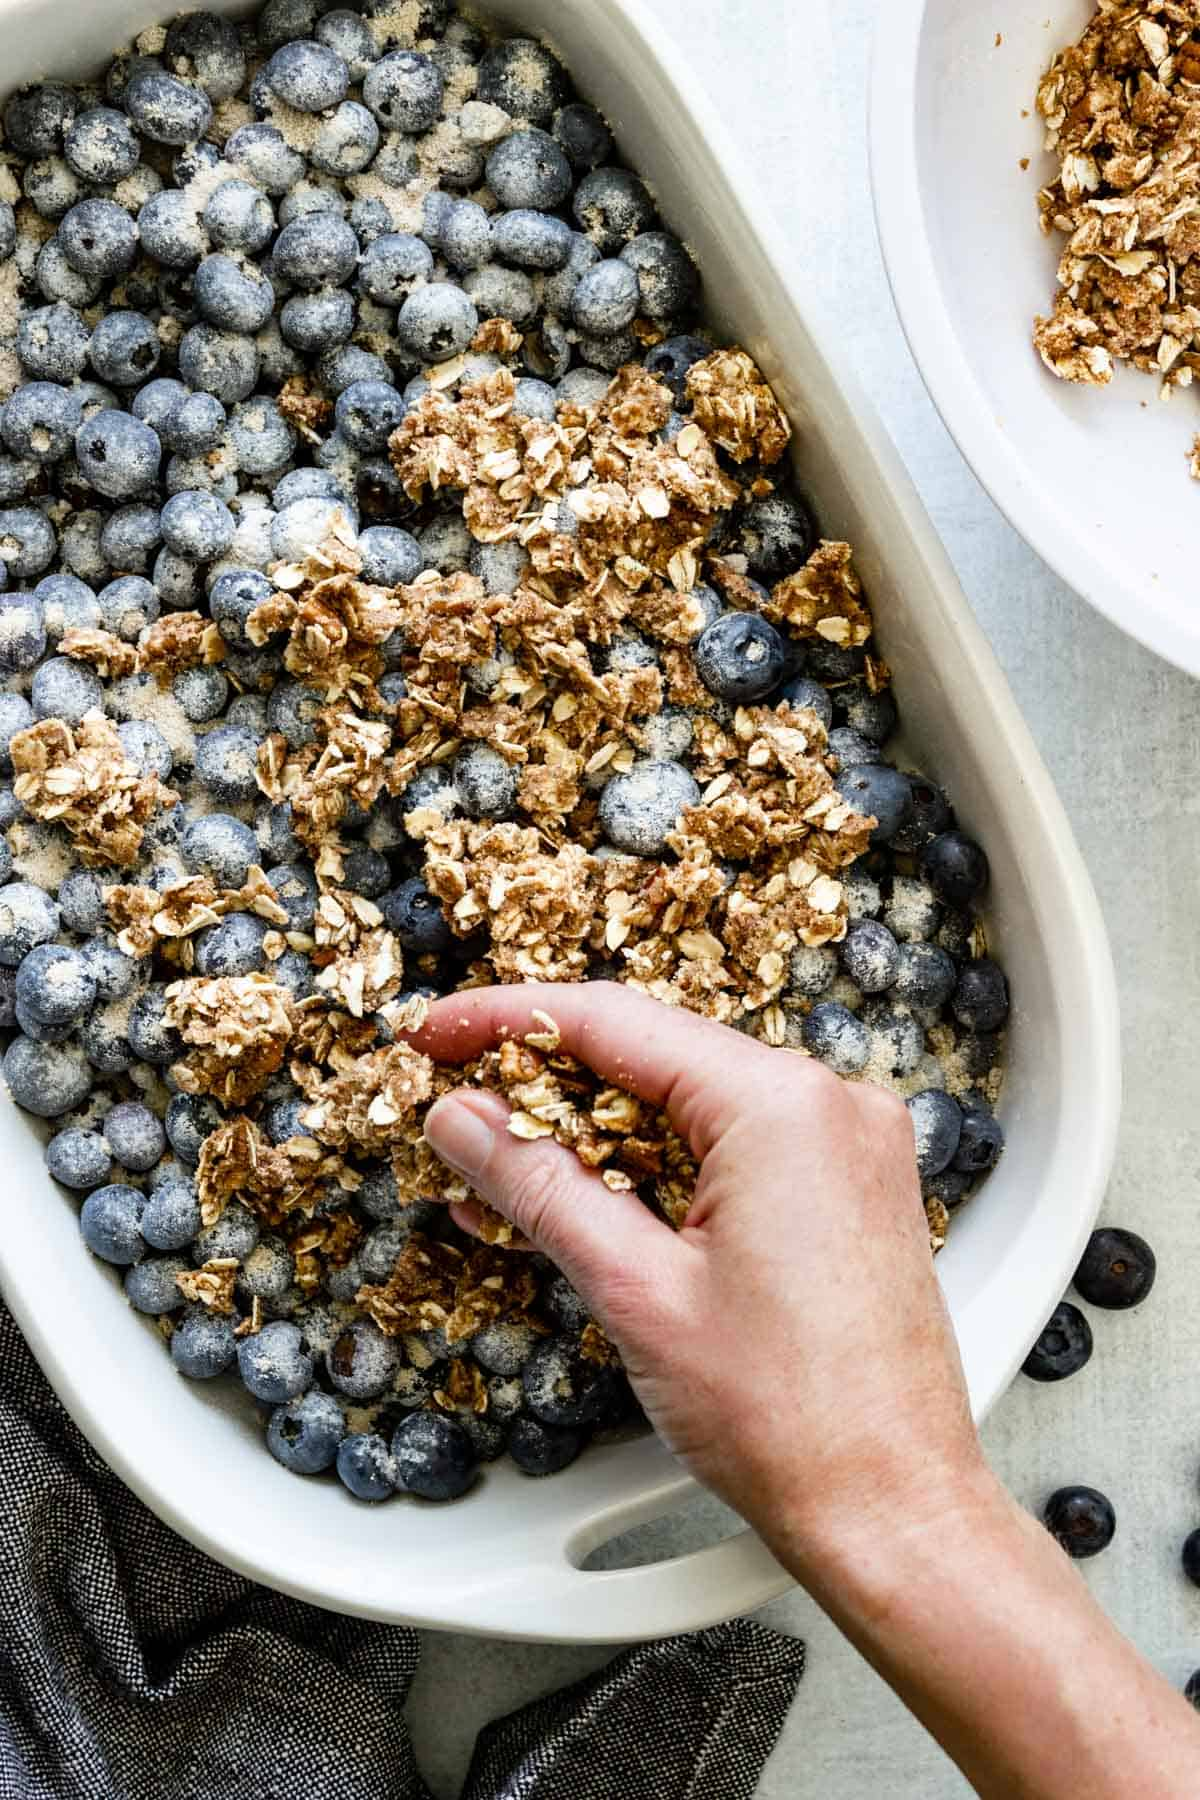 A hand is sprinkling crisp topping over a baking dish of blueberries.